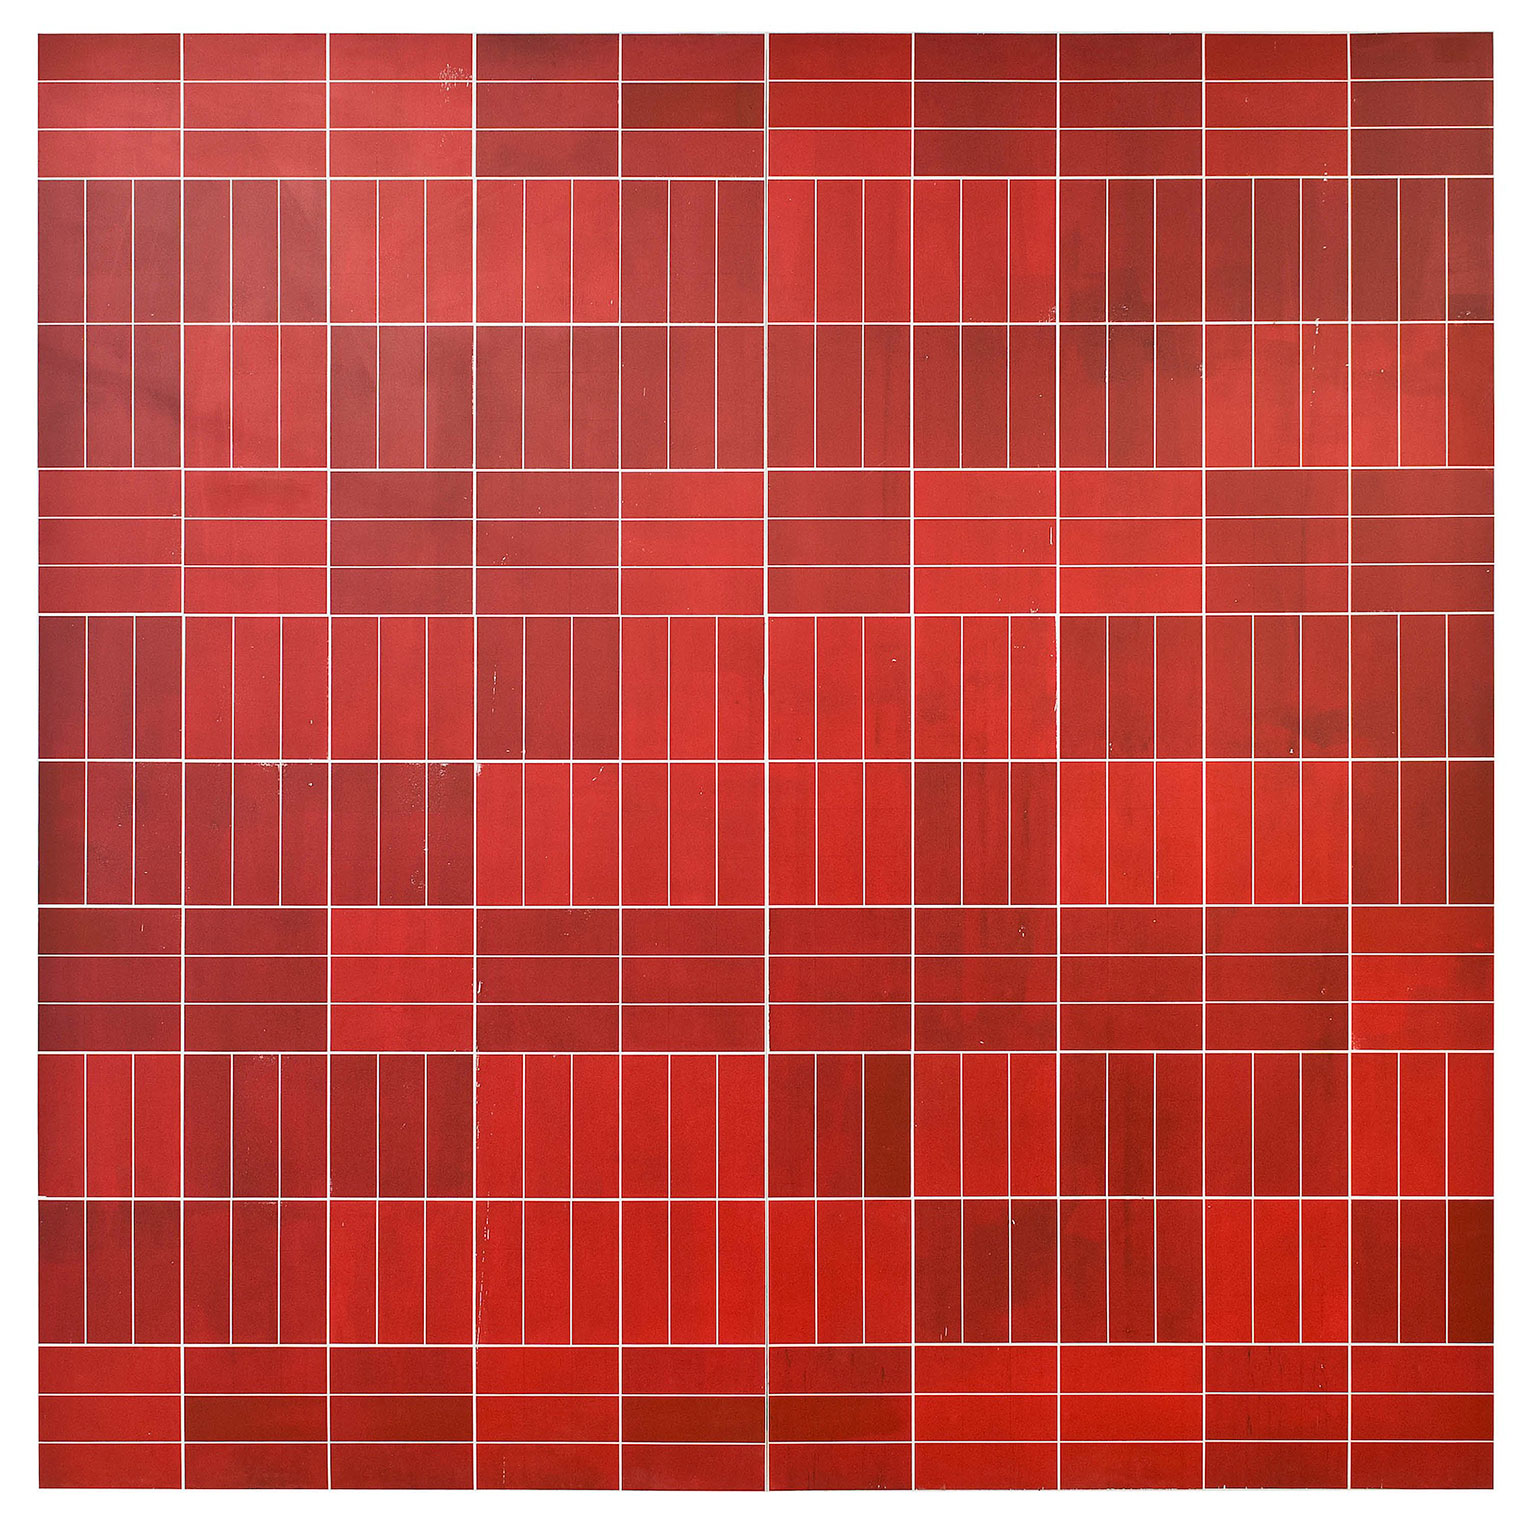 <b>Title:&nbsp;</b>Red Brick<br /><b>Year:&nbsp;</b>2013<br /><b>Medium:&nbsp;</b>Silkscreen and acrylic on wood<br /><b>Size:&nbsp;</b>244 x 244 cm